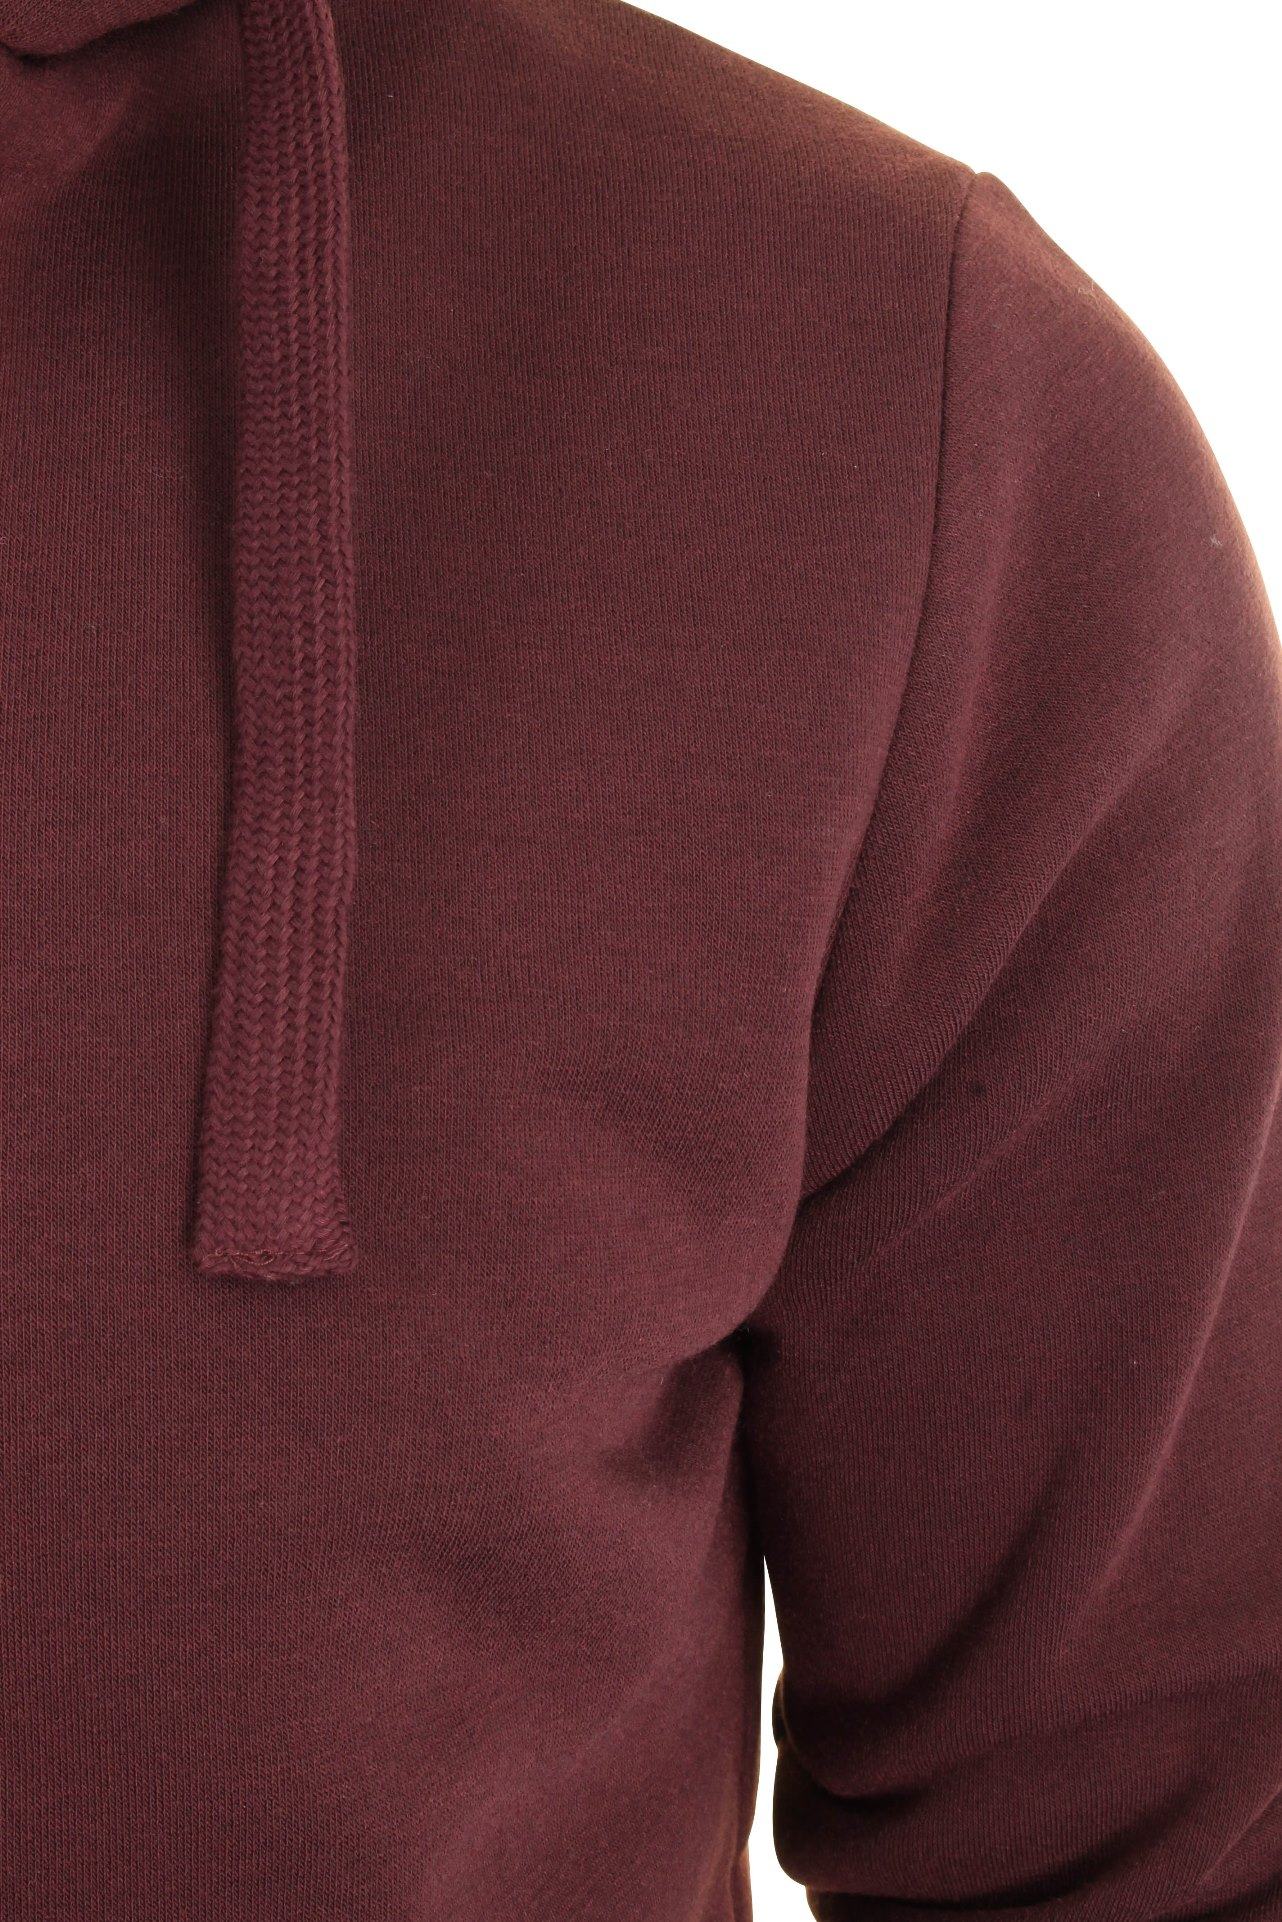 Mens-Dissident-Hoodie-039-Bolo-2-039-Fleece-Lined-Hood-amp-Body thumbnail 13